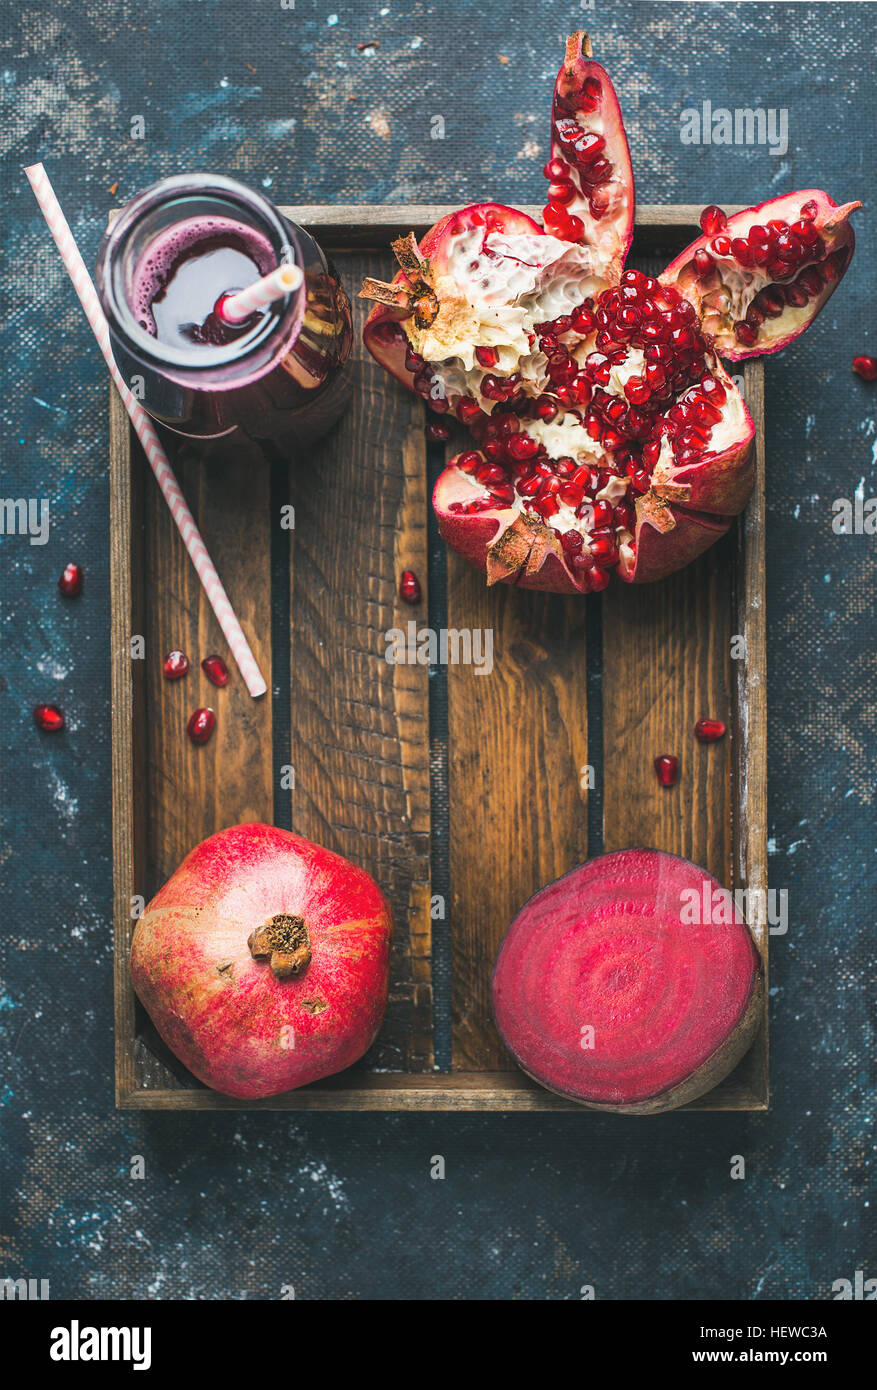 Ripe seasonal pomegranates, beetroot and freshly squeezed juice in glass - Stock Image